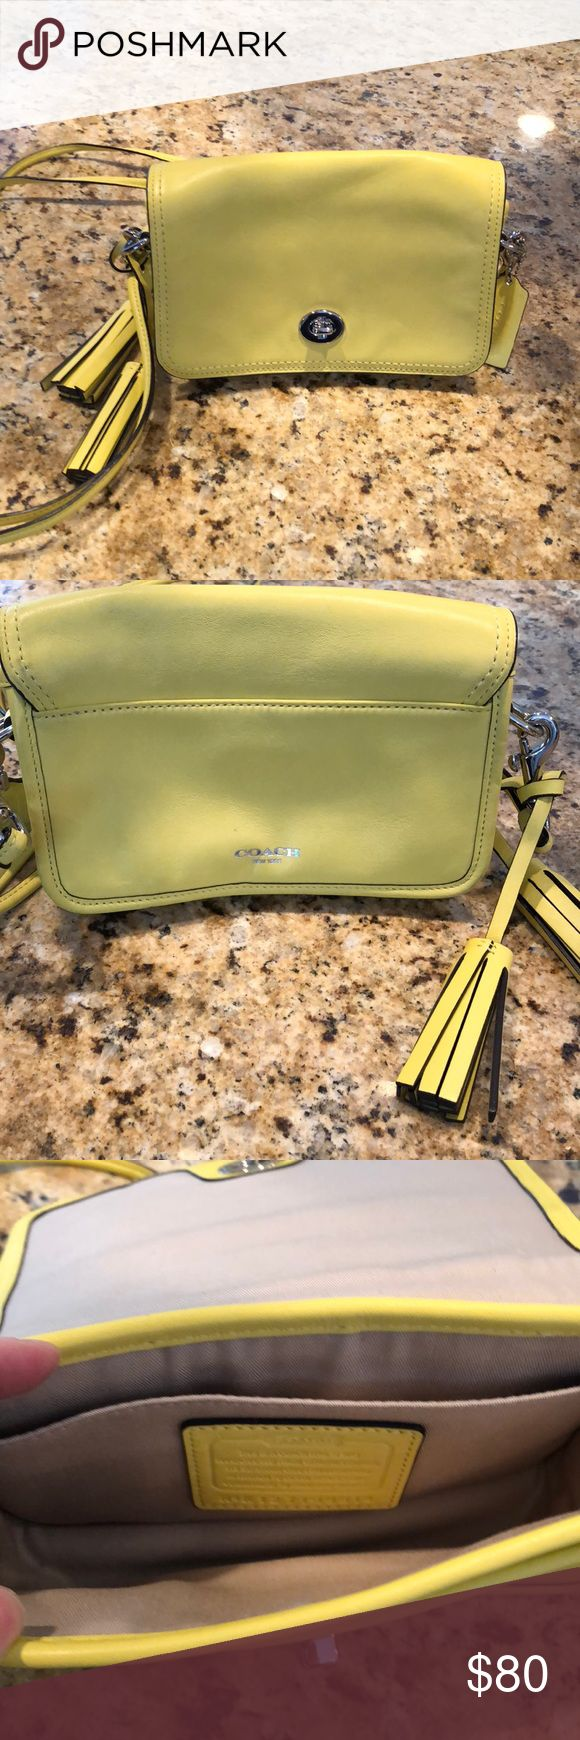 """Authentic coach bag Used once small banana color coach pocketbook.  In perfect condition.   Has tassel on side and has small pocket inside bag and one in the outside.  No stains or rips.  Length=7"""" Width= 6"""" Depth = 4"""" Drop = approx 22"""" Coach Bags Crossbody Bags"""